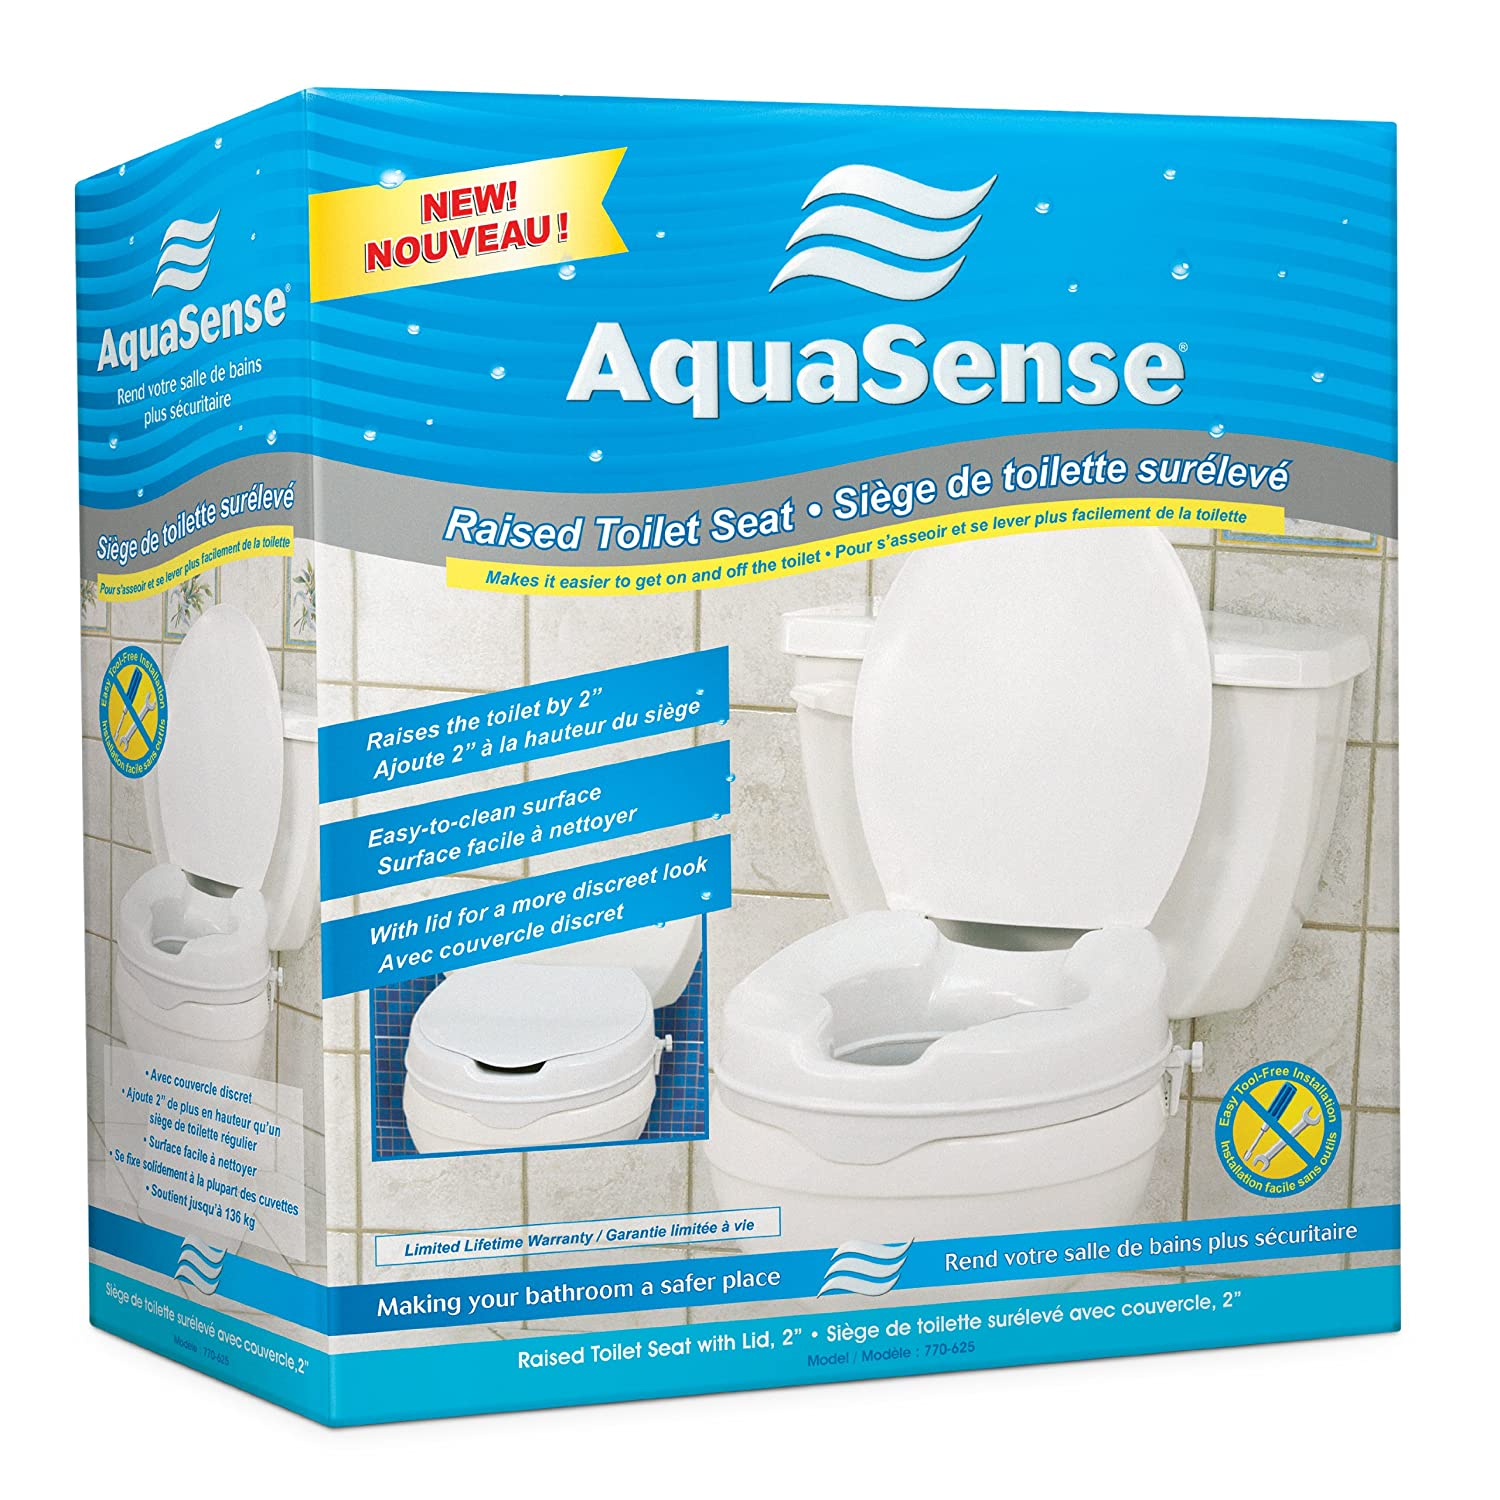 2 Inch Toilet Seat. Amazon com  AquaSense Raised Toilet Seat with Lid White 2 Inches Health Personal Care